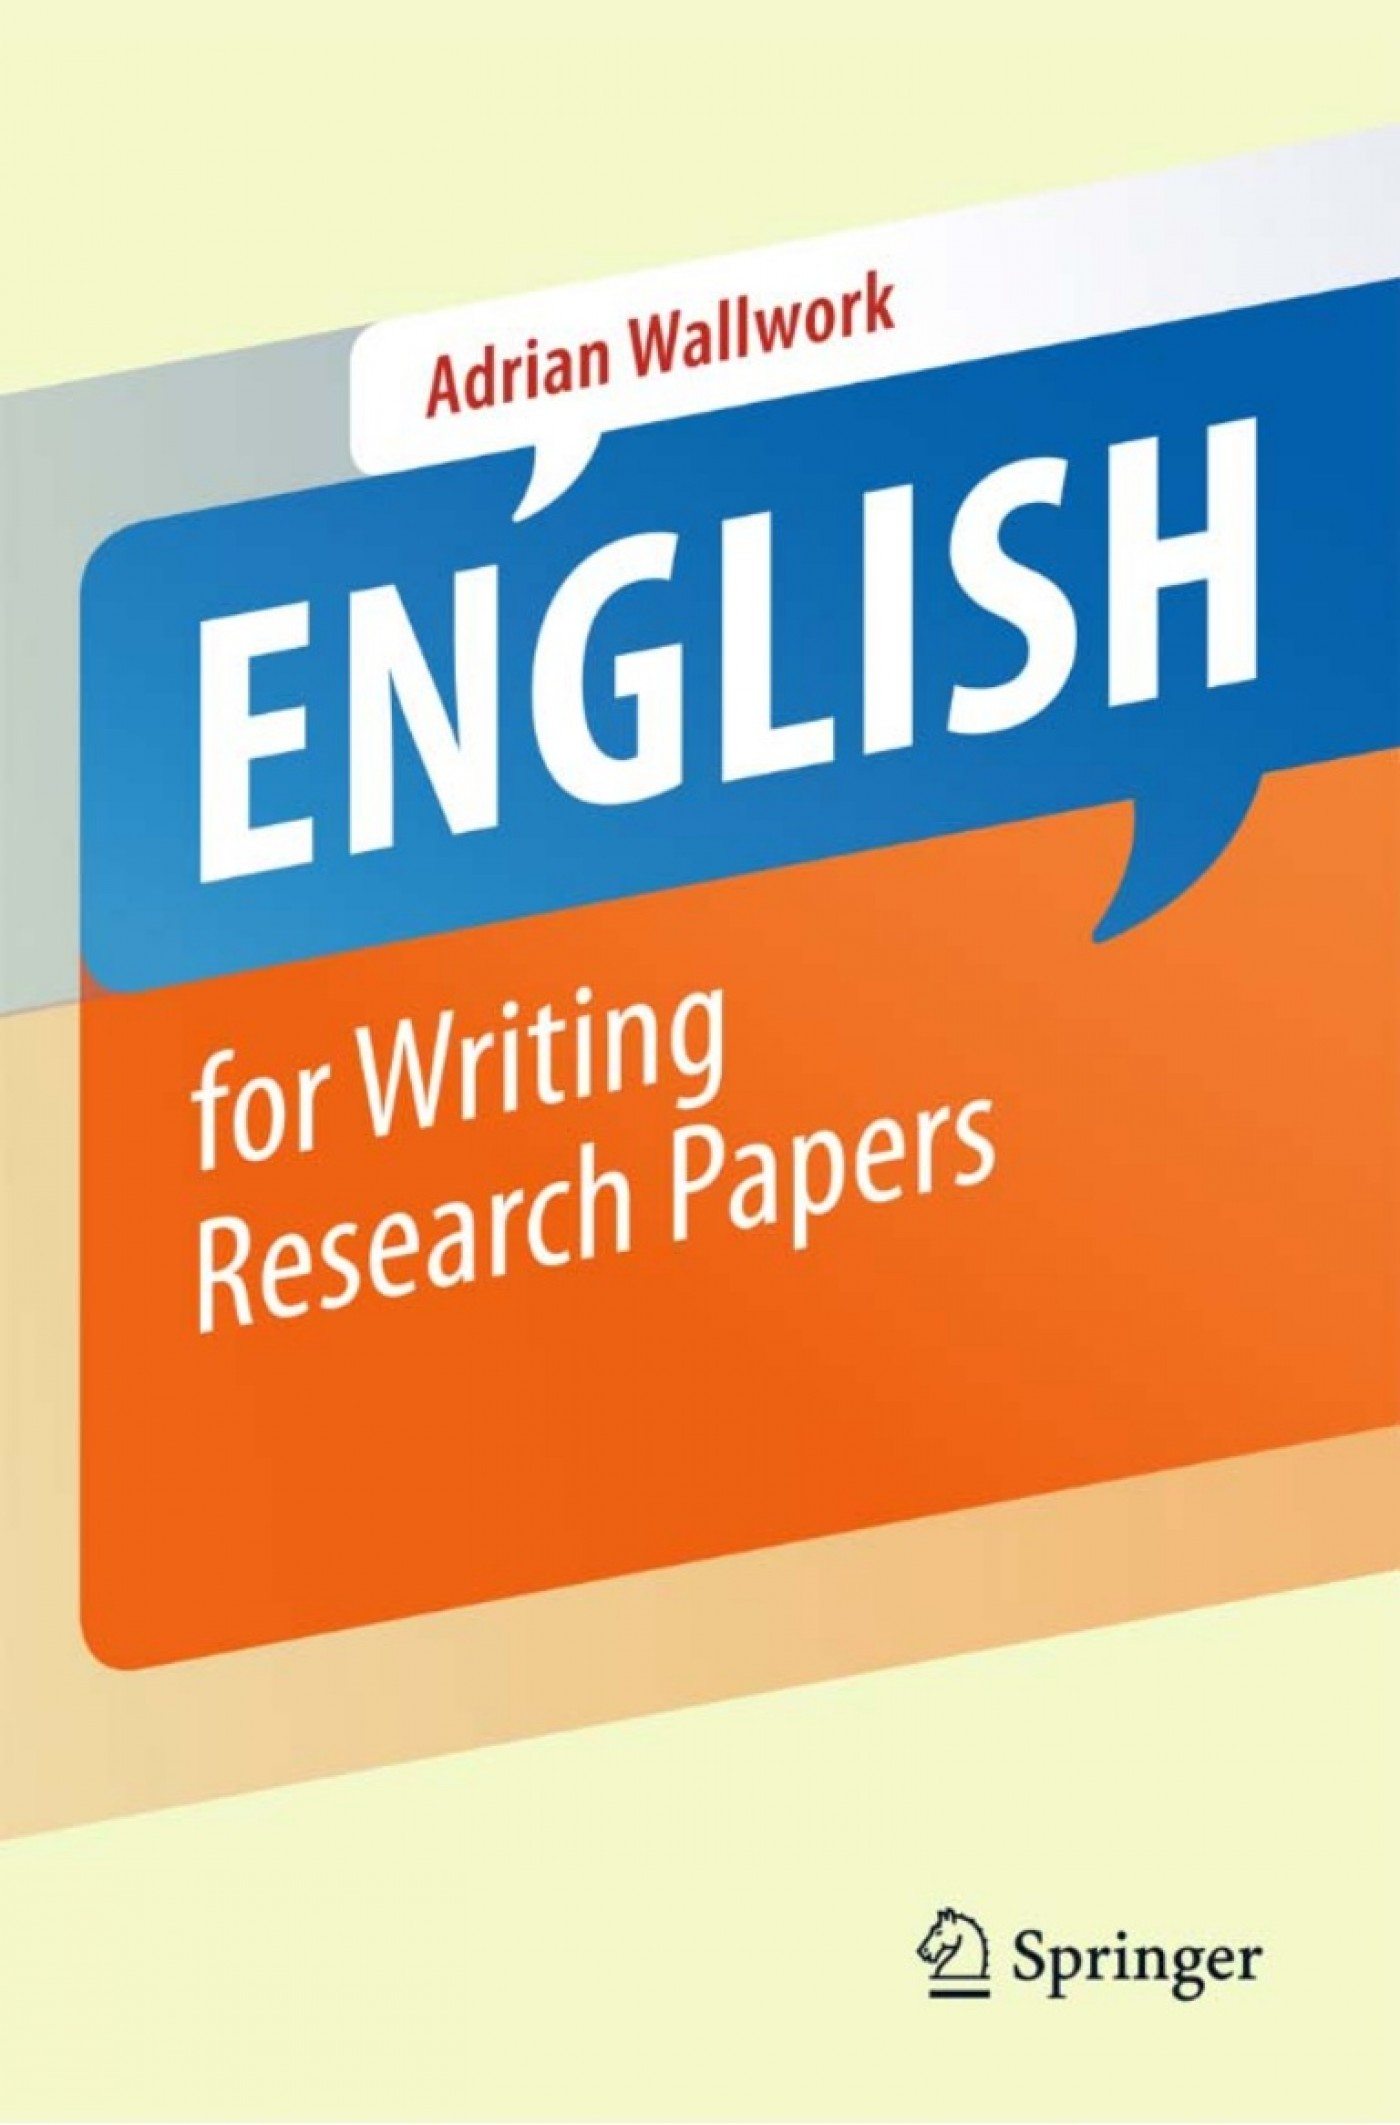 019 Englishforwritingresearchpapers Conversion Gate01 Thumbnail Writing Research Striking Paper Papers A Complete Guide Global Edition Pdf Lester 16th Free 1400